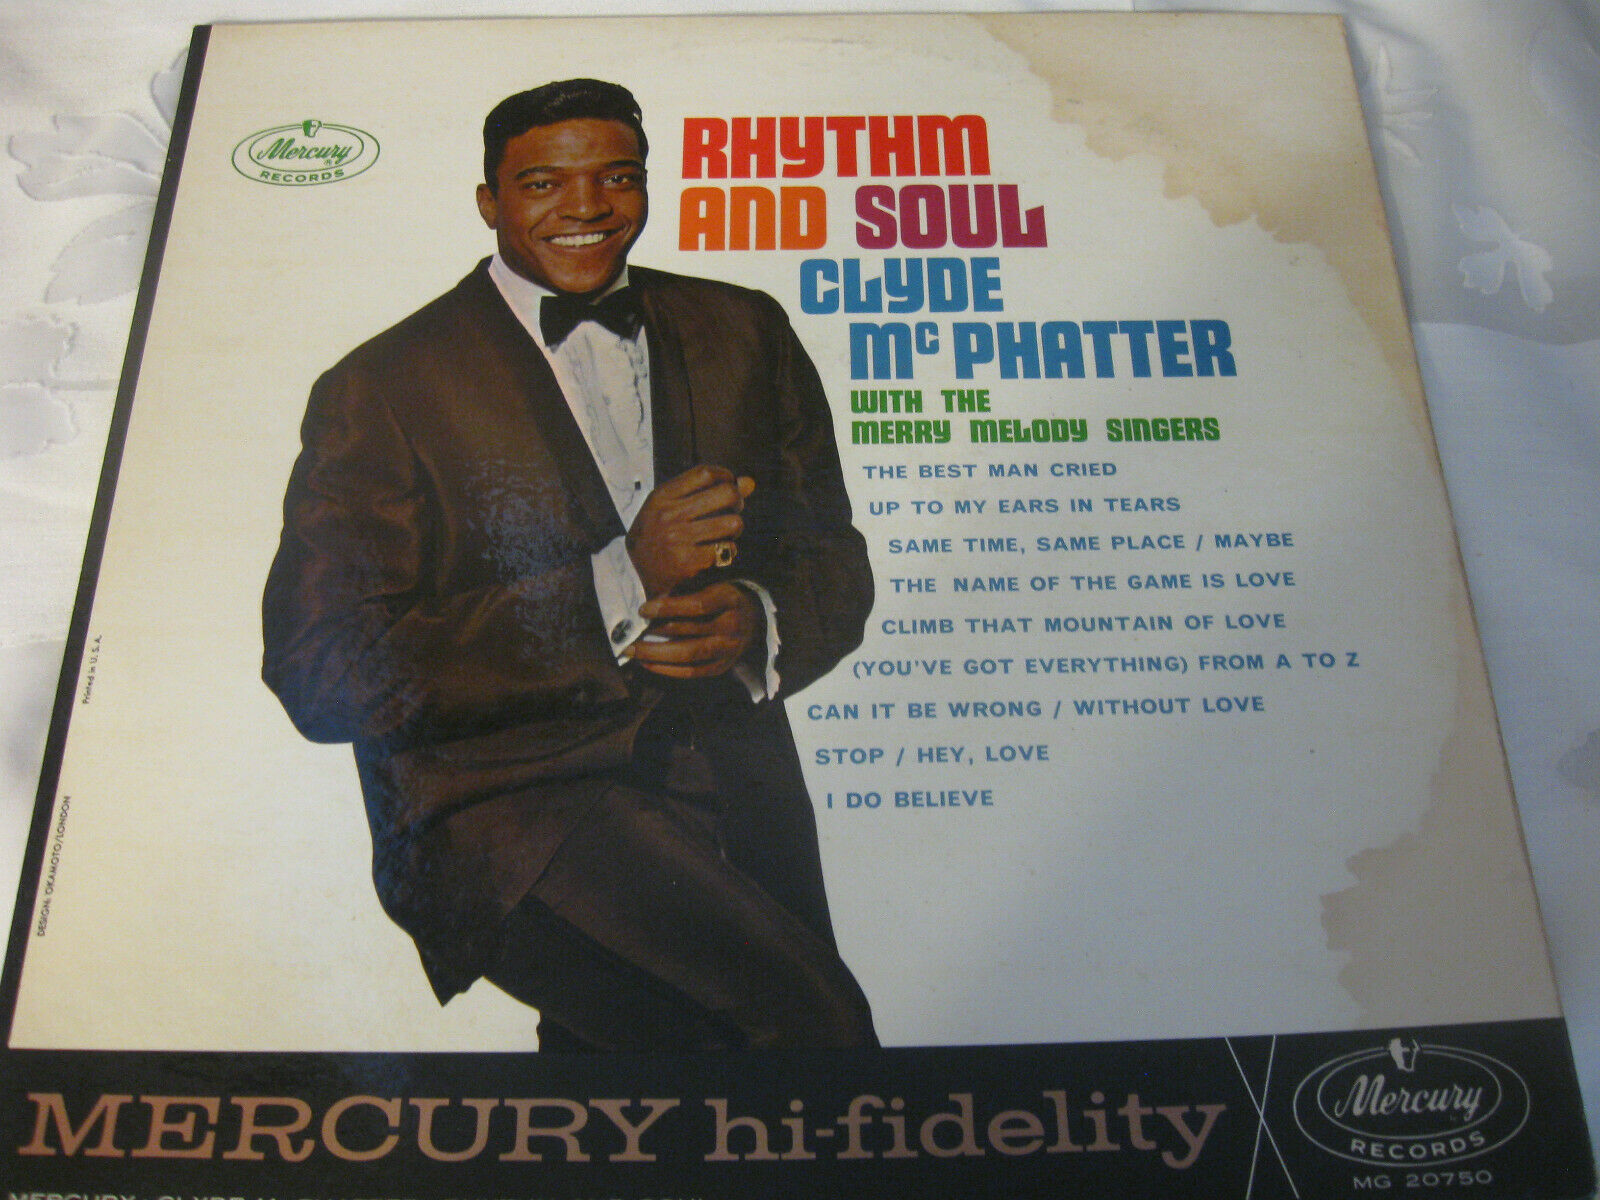 Clyde McPhatter Rhythm And Soul Mercury MG 20750 Mono LP Vinyl Record Album